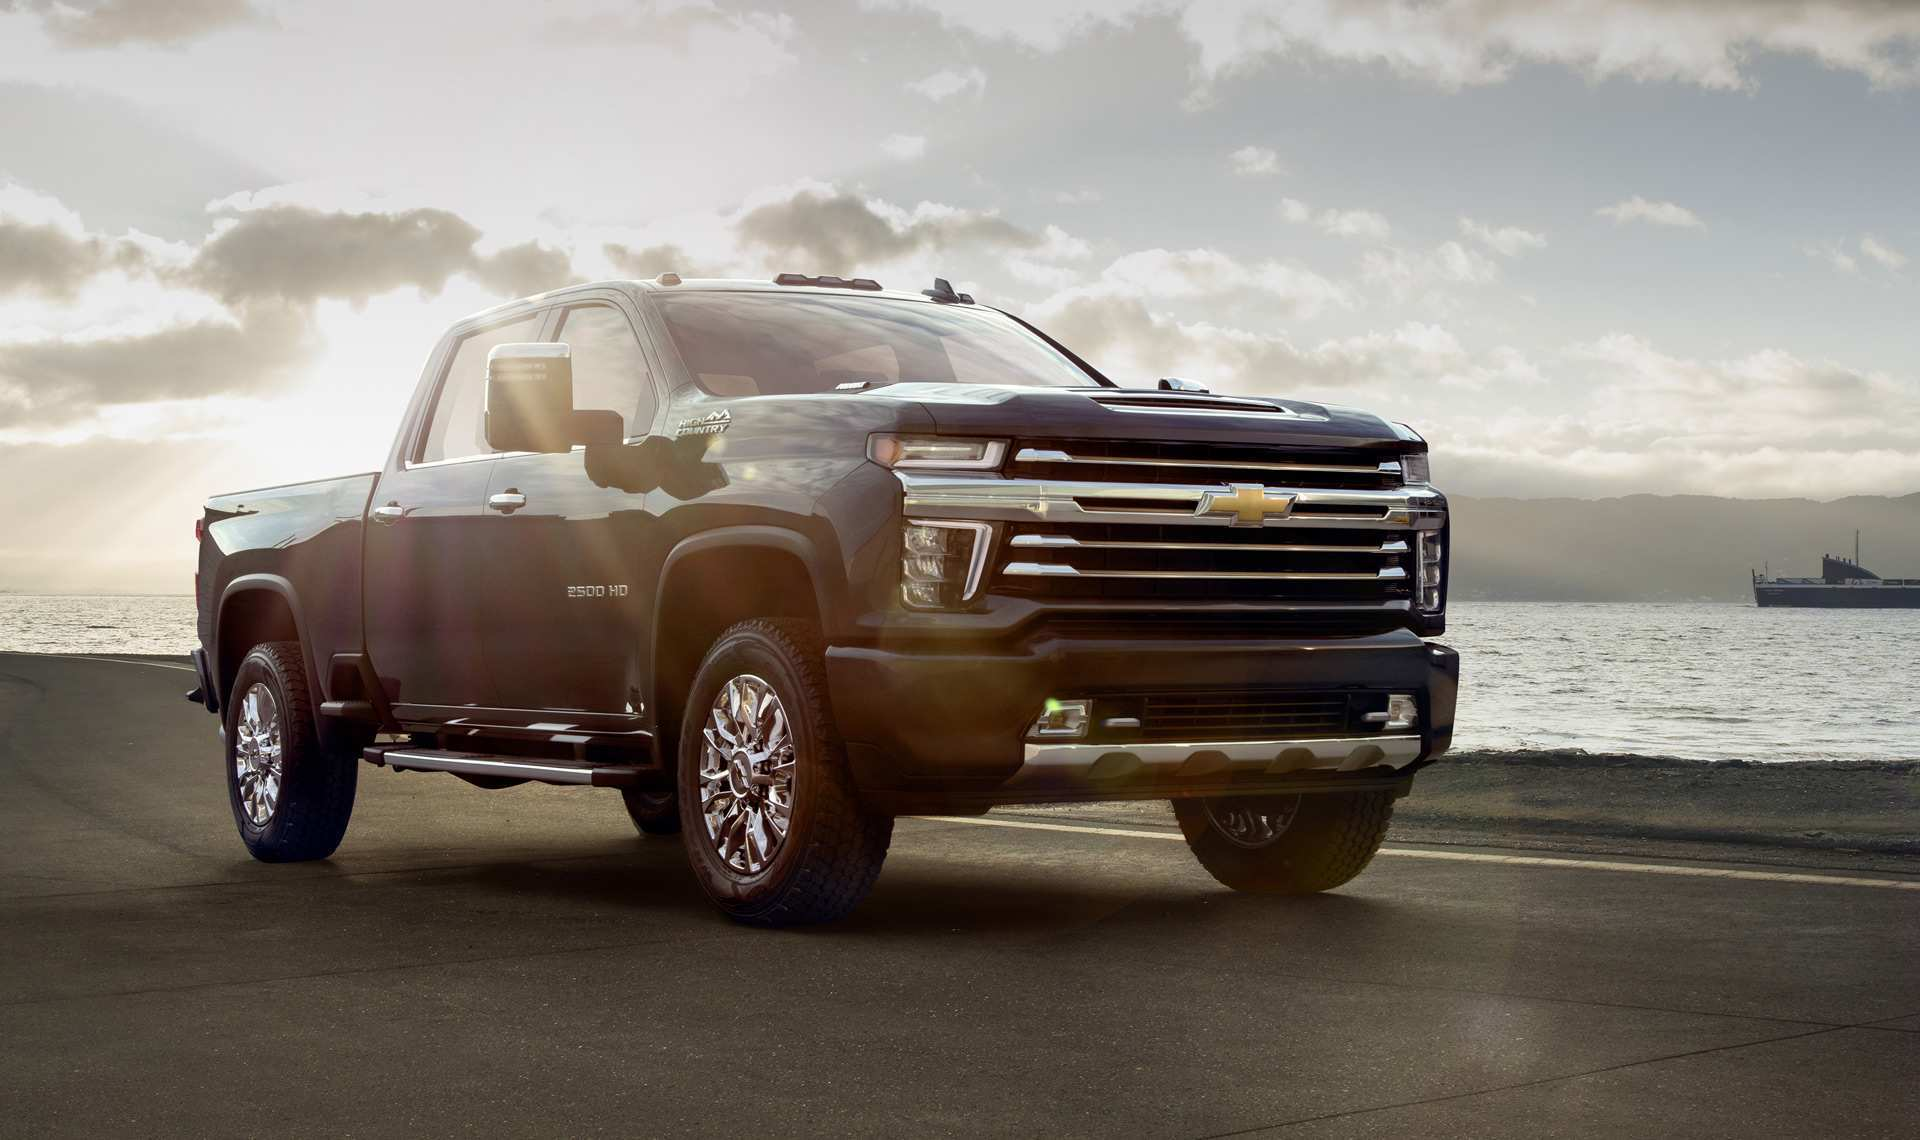 88 All New 2020 Chevrolet Silverado Engine by 2020 Chevrolet Silverado